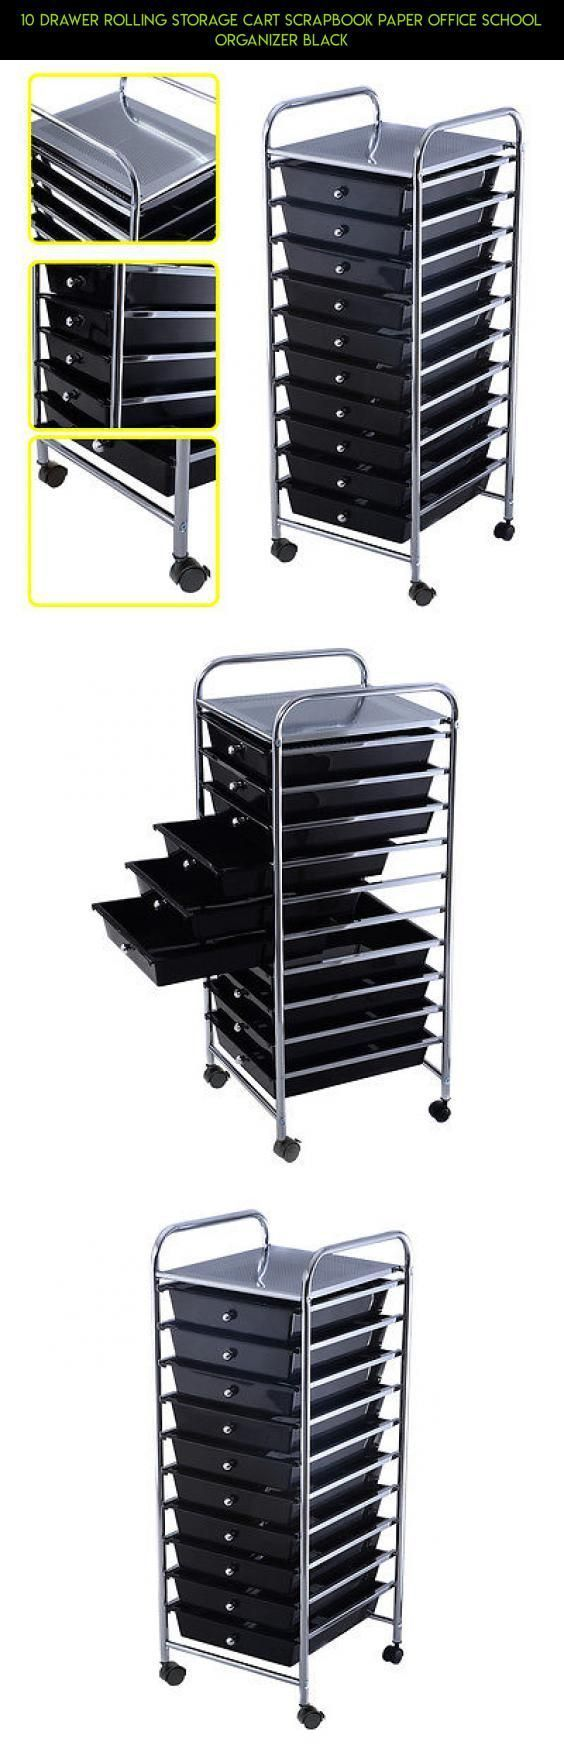 10 Drawer Rolling Storage Cart Scrapbook Paper Office School Organizer Black #drawer #products #tech #gadgets #camera #drone #kit #storage #fpv #plans #organizer #technology #racing #shopping #parts